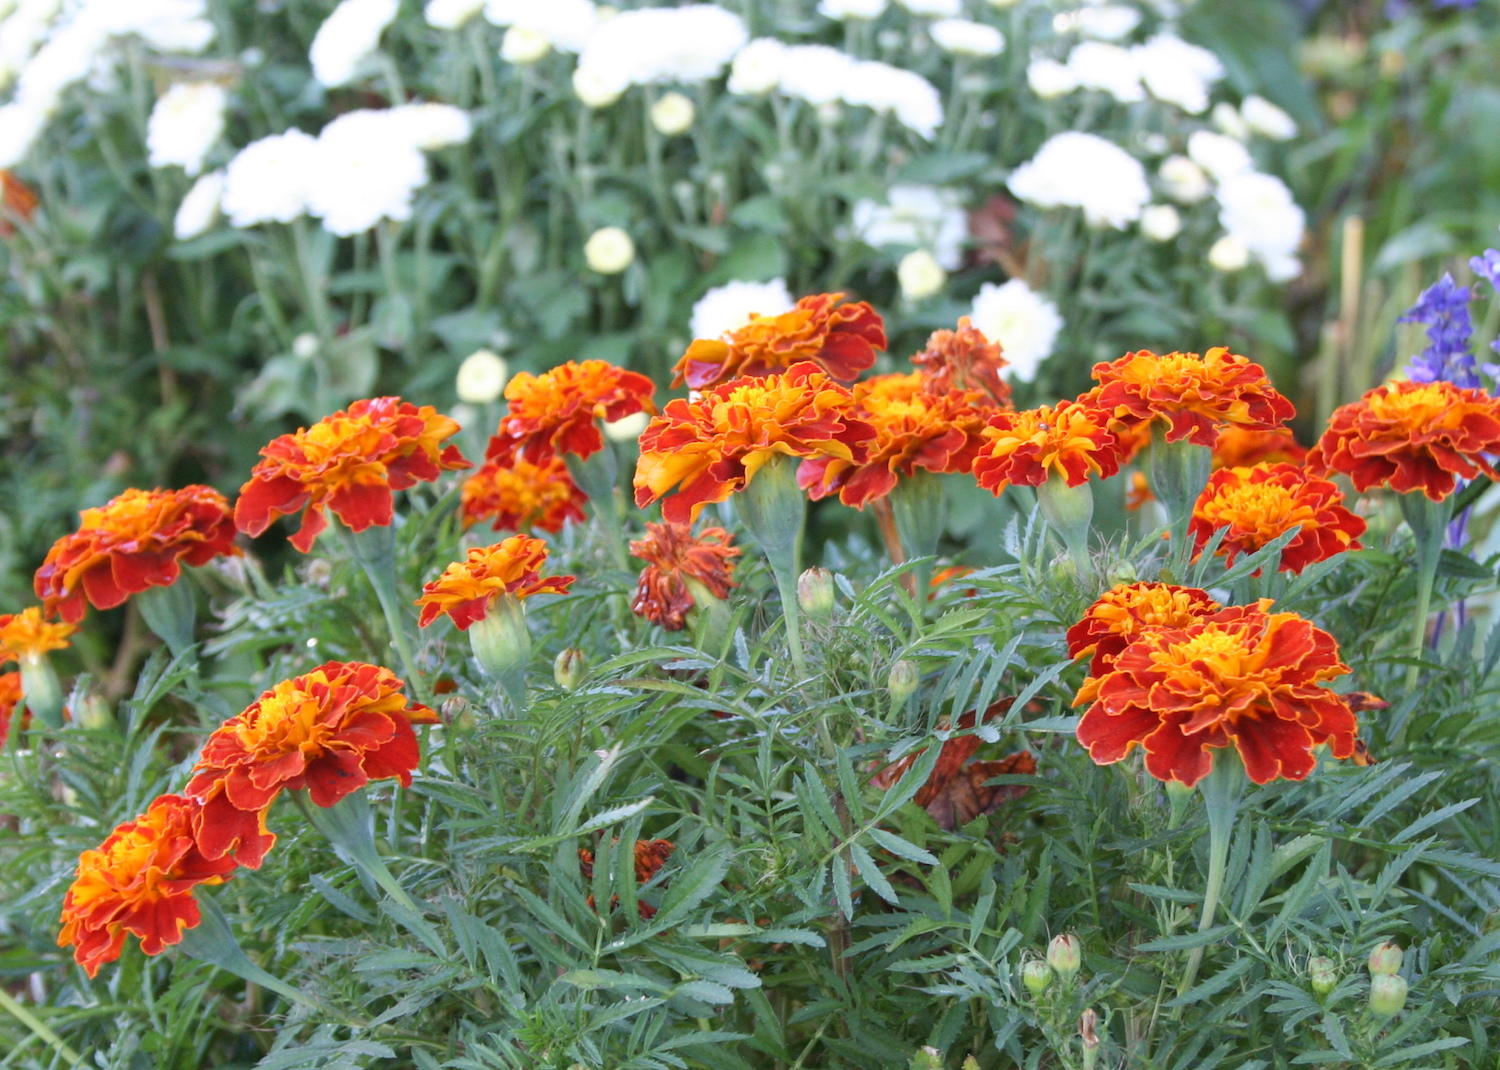 marigolds can be a fall bloomer